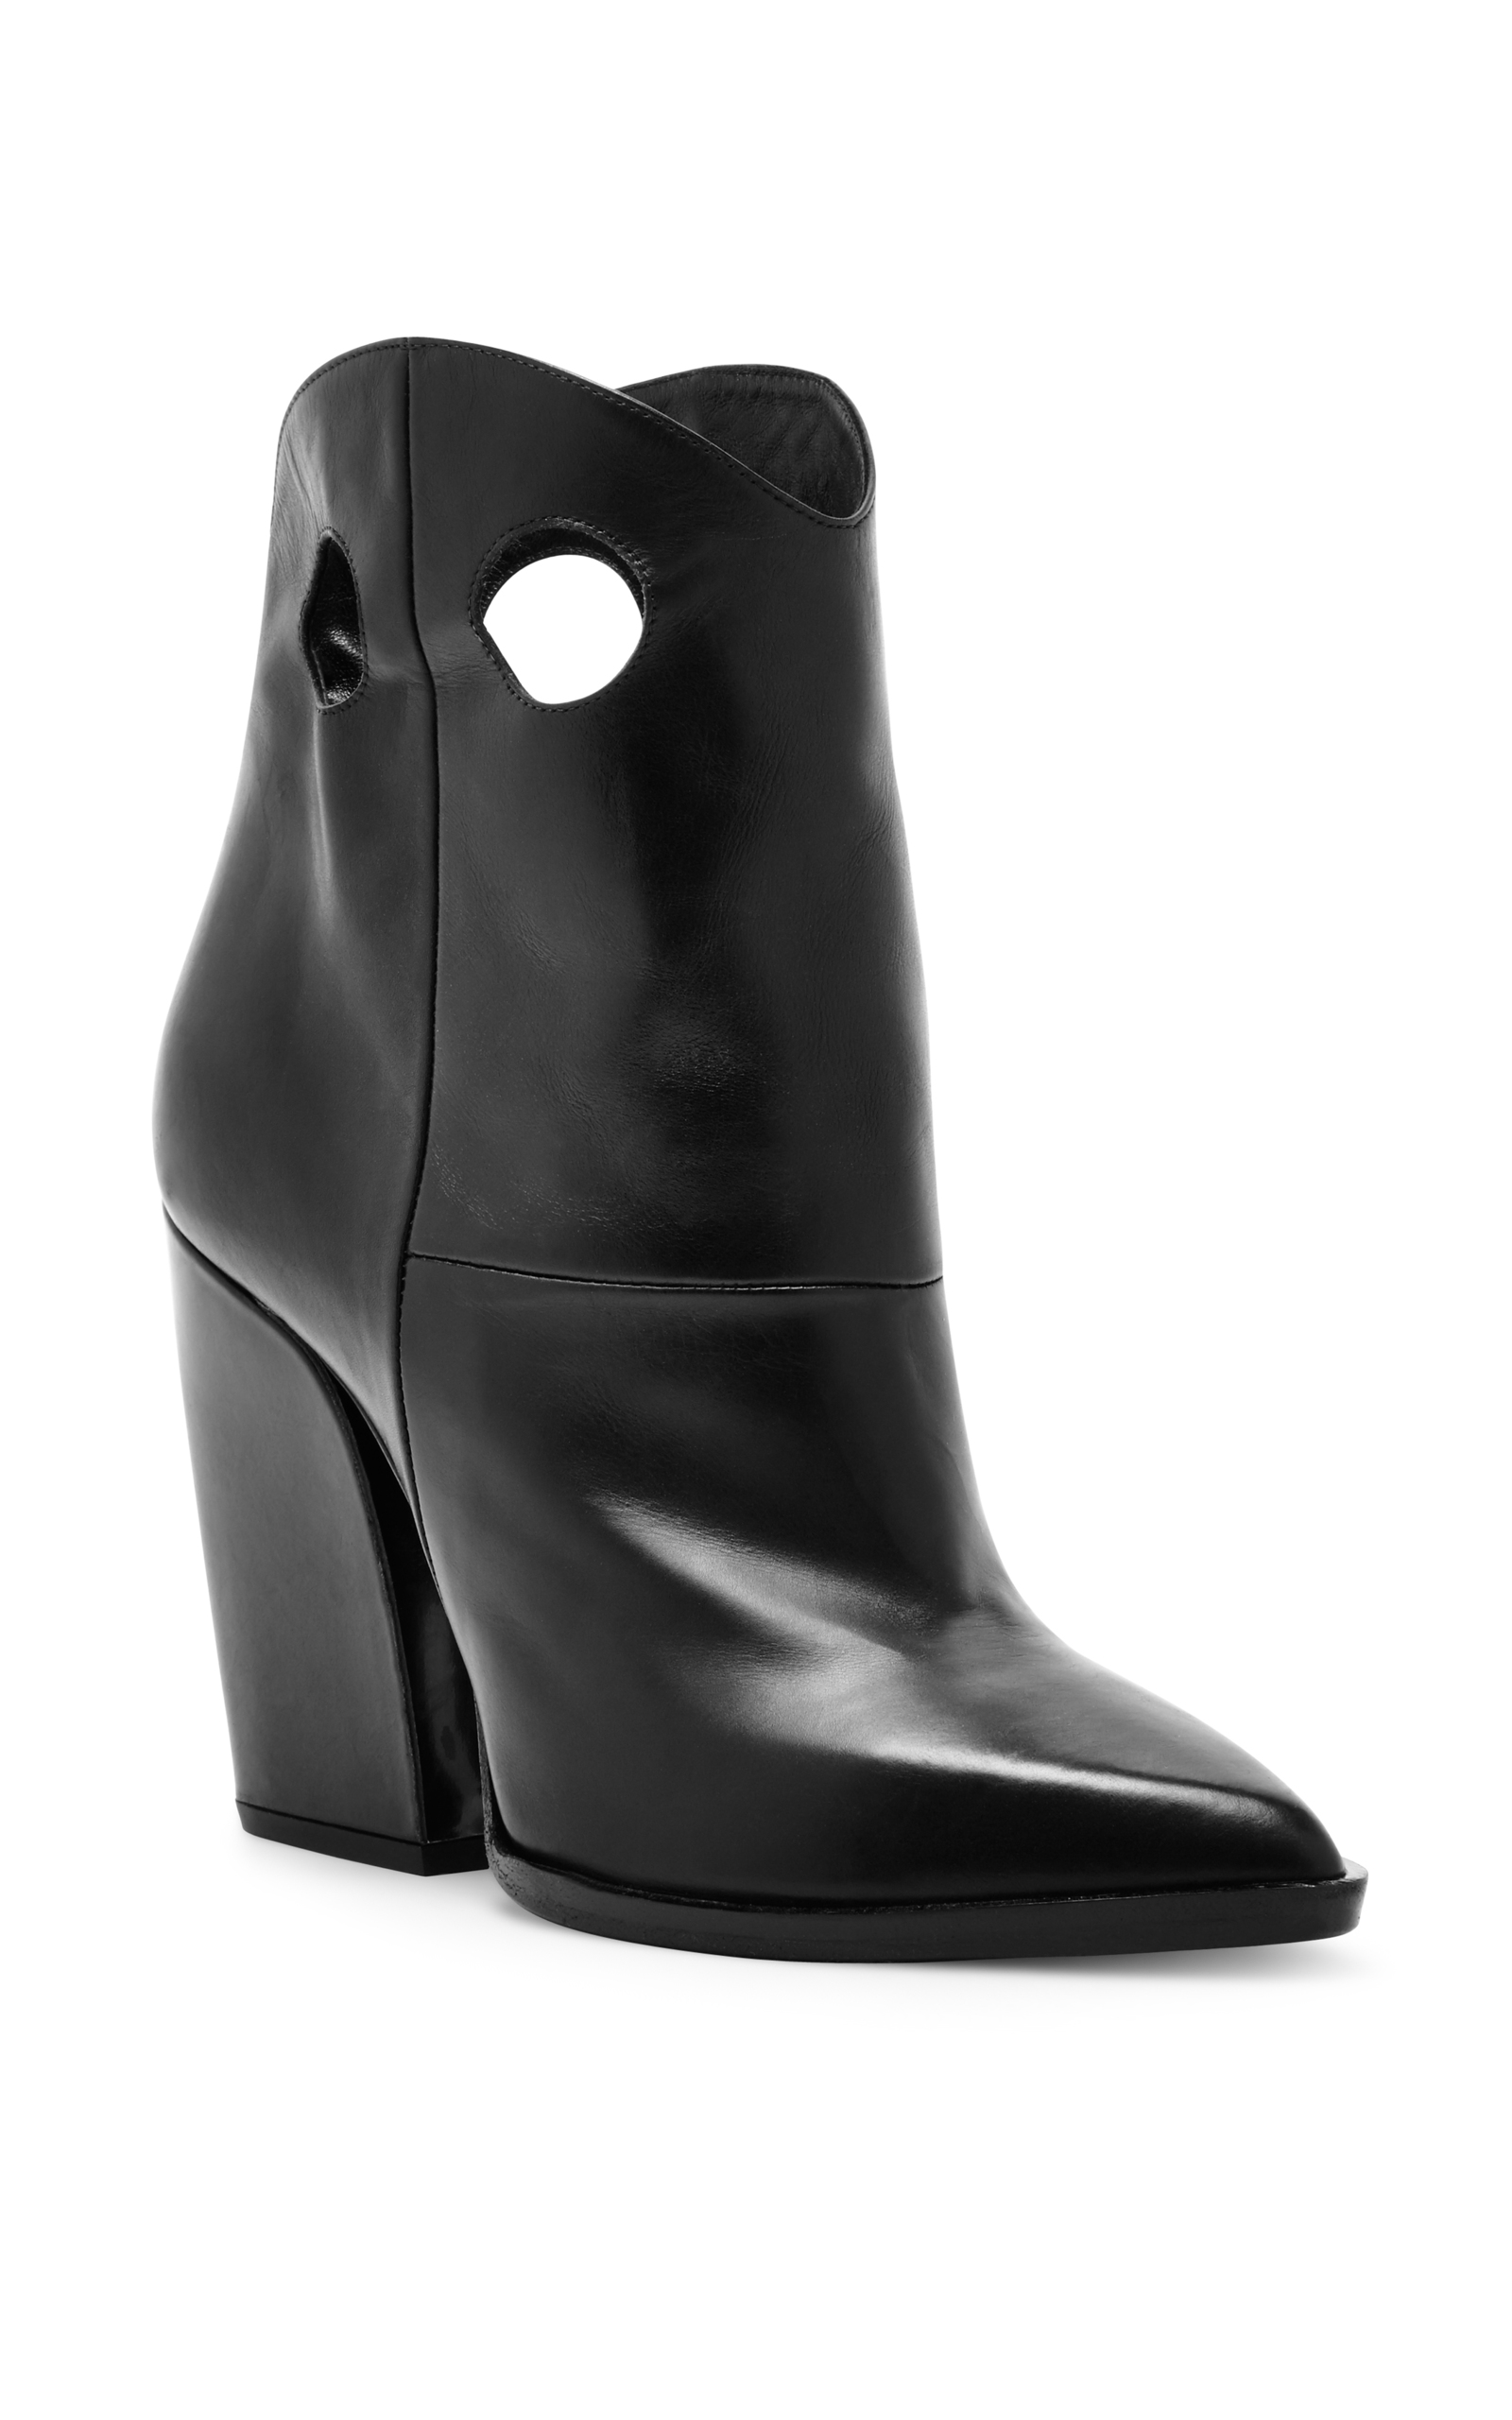 Pierre Hardy Leather Velvet-Trimmed Booties sale choice authentic online finishline for sale sale UbXI2N